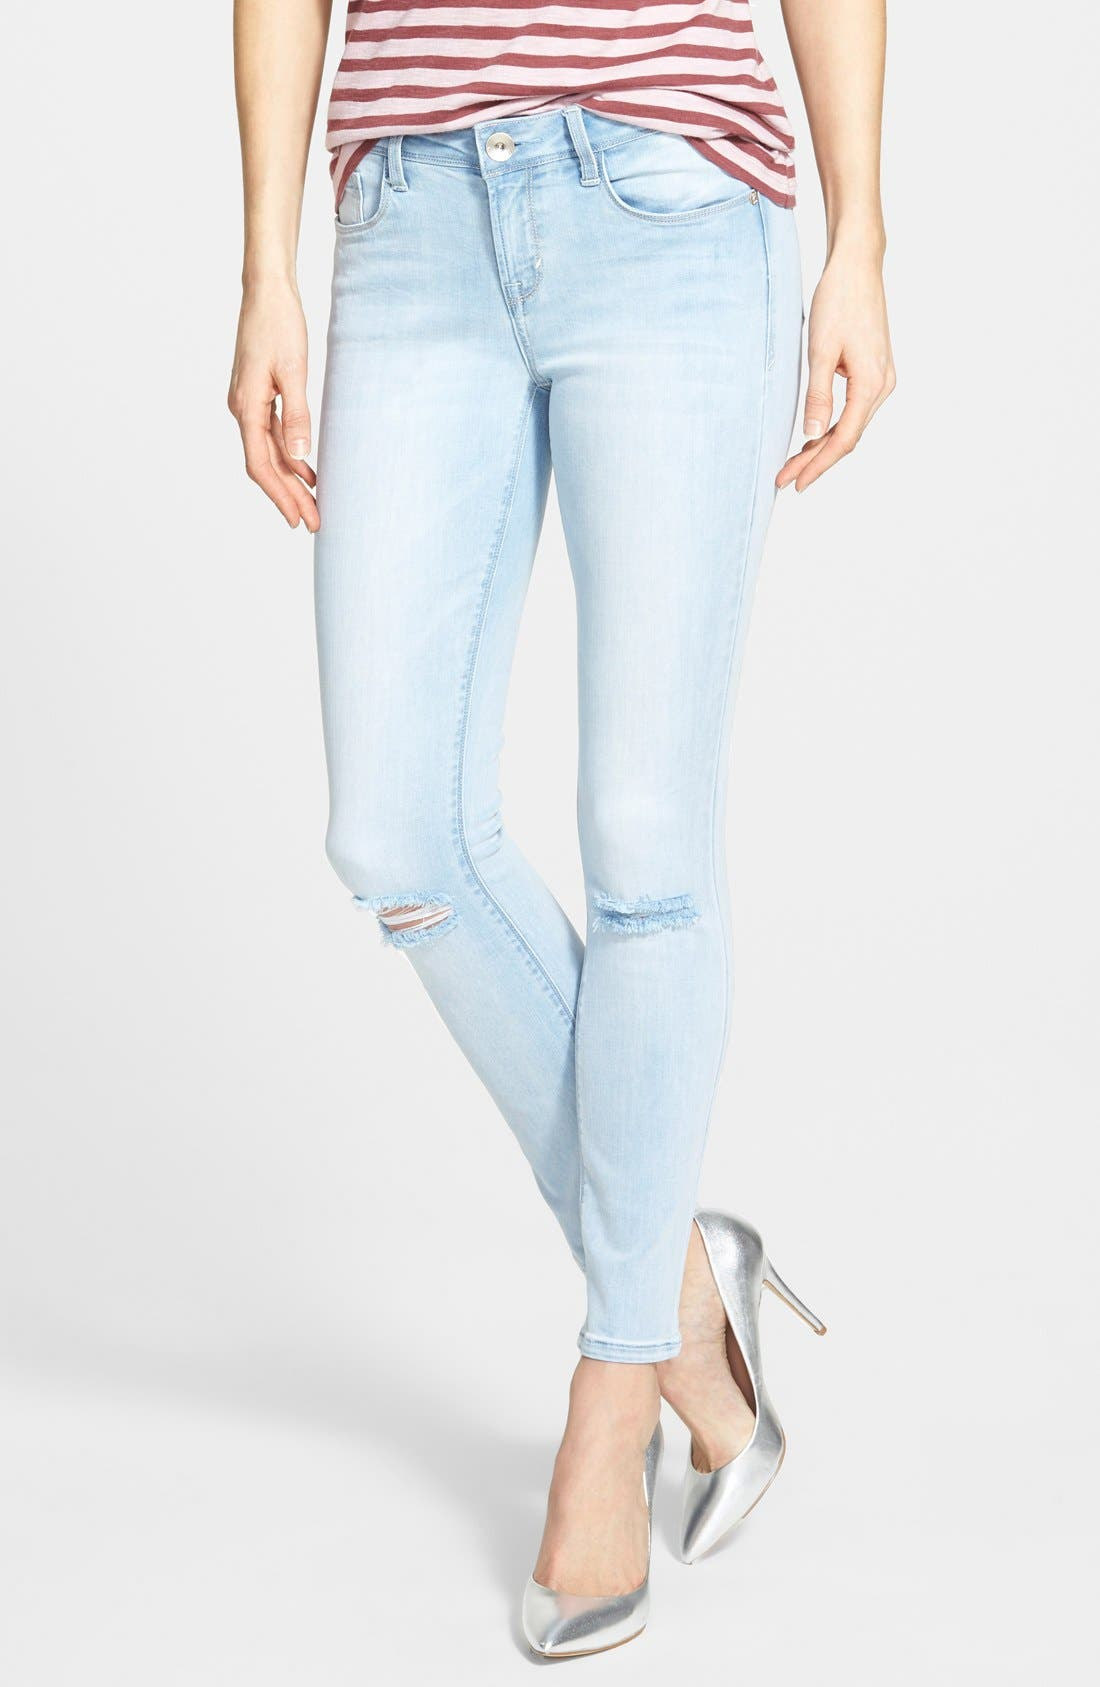 Main Image - kensie 'Ankle Biter' Destroyed Skinny Jeans (Like a Rolling Stone)